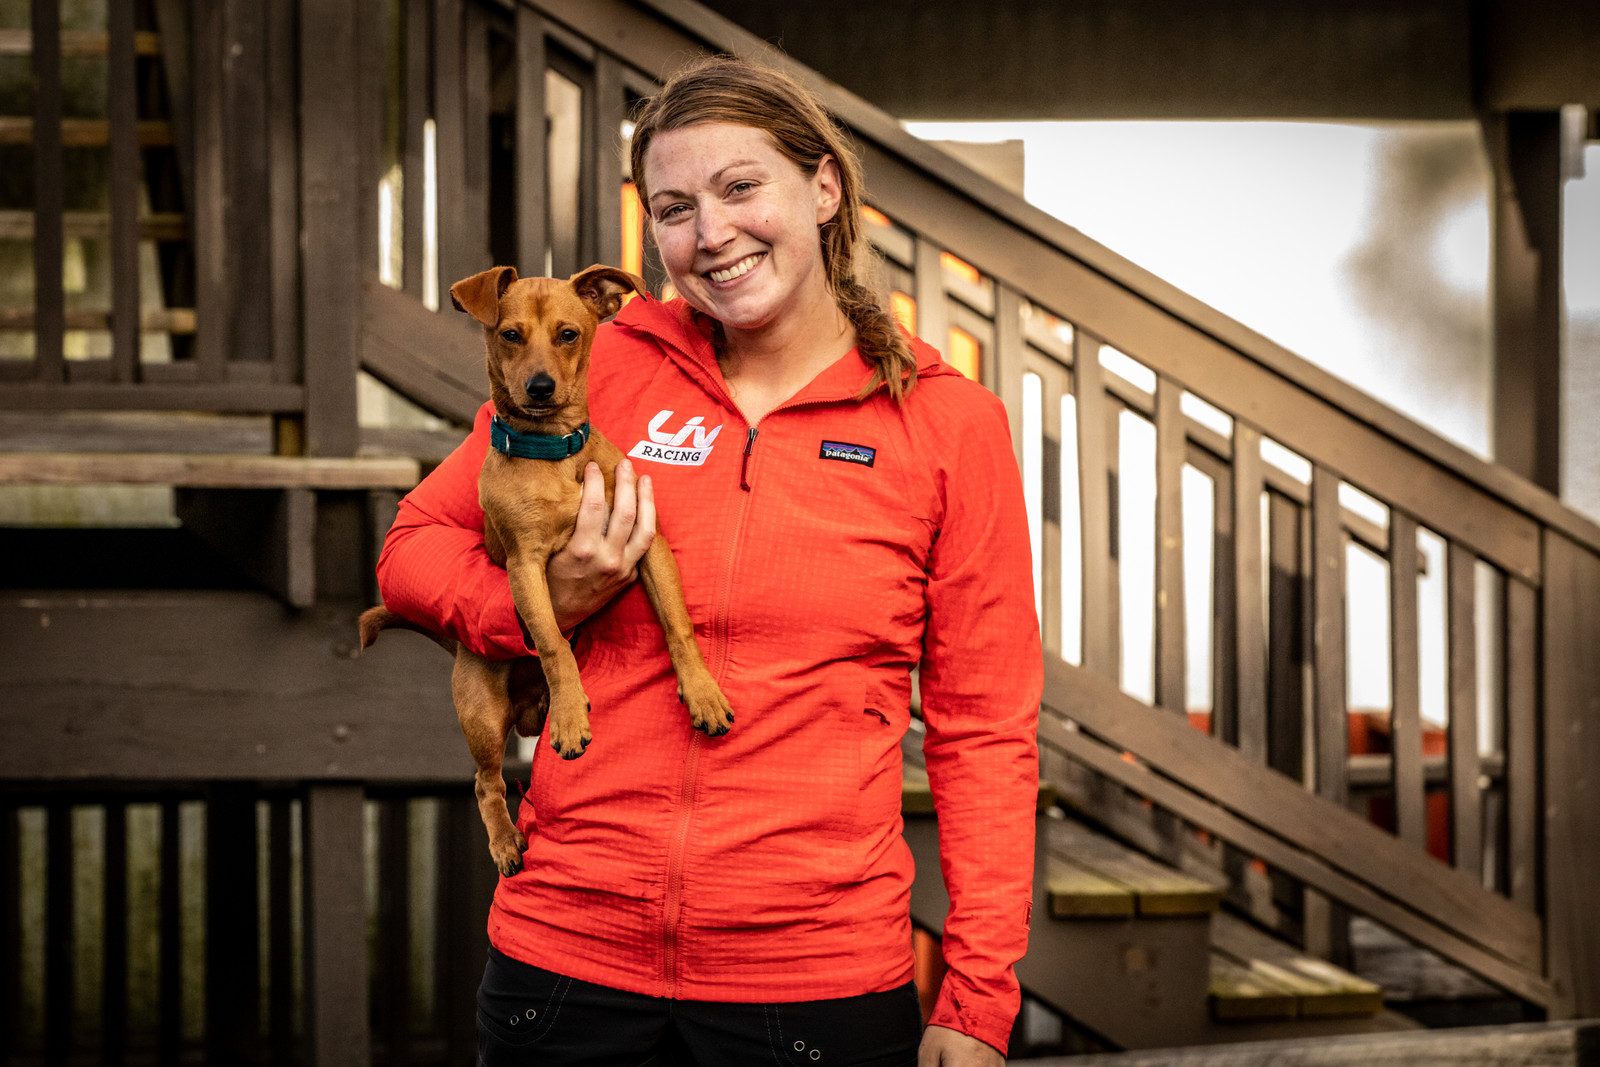 Caroline Washam and Chuppy.